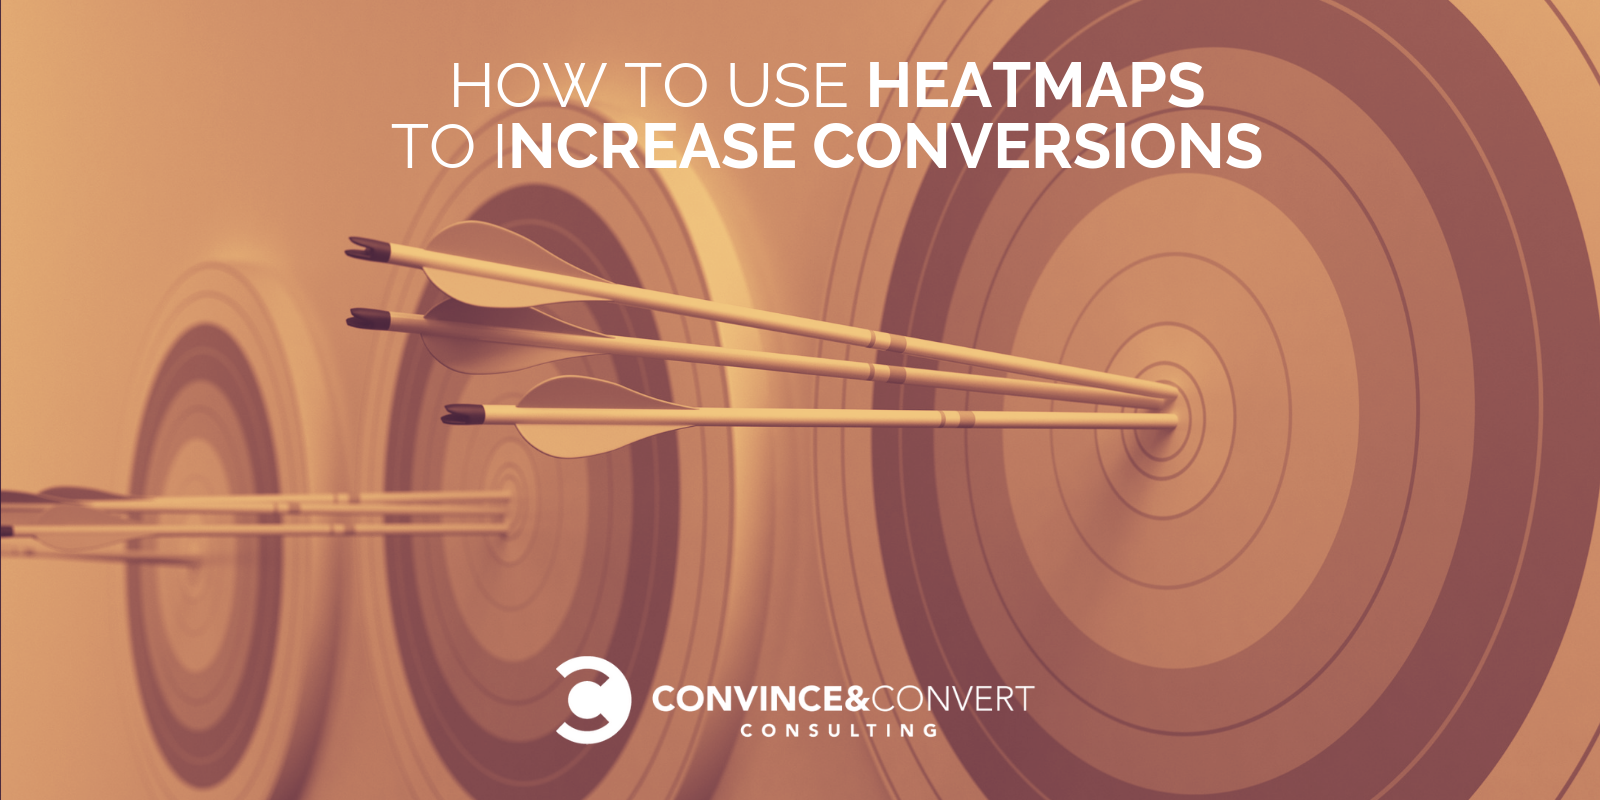 How to Use Heatmaps to Increase Your Conversions | Convince & Convert